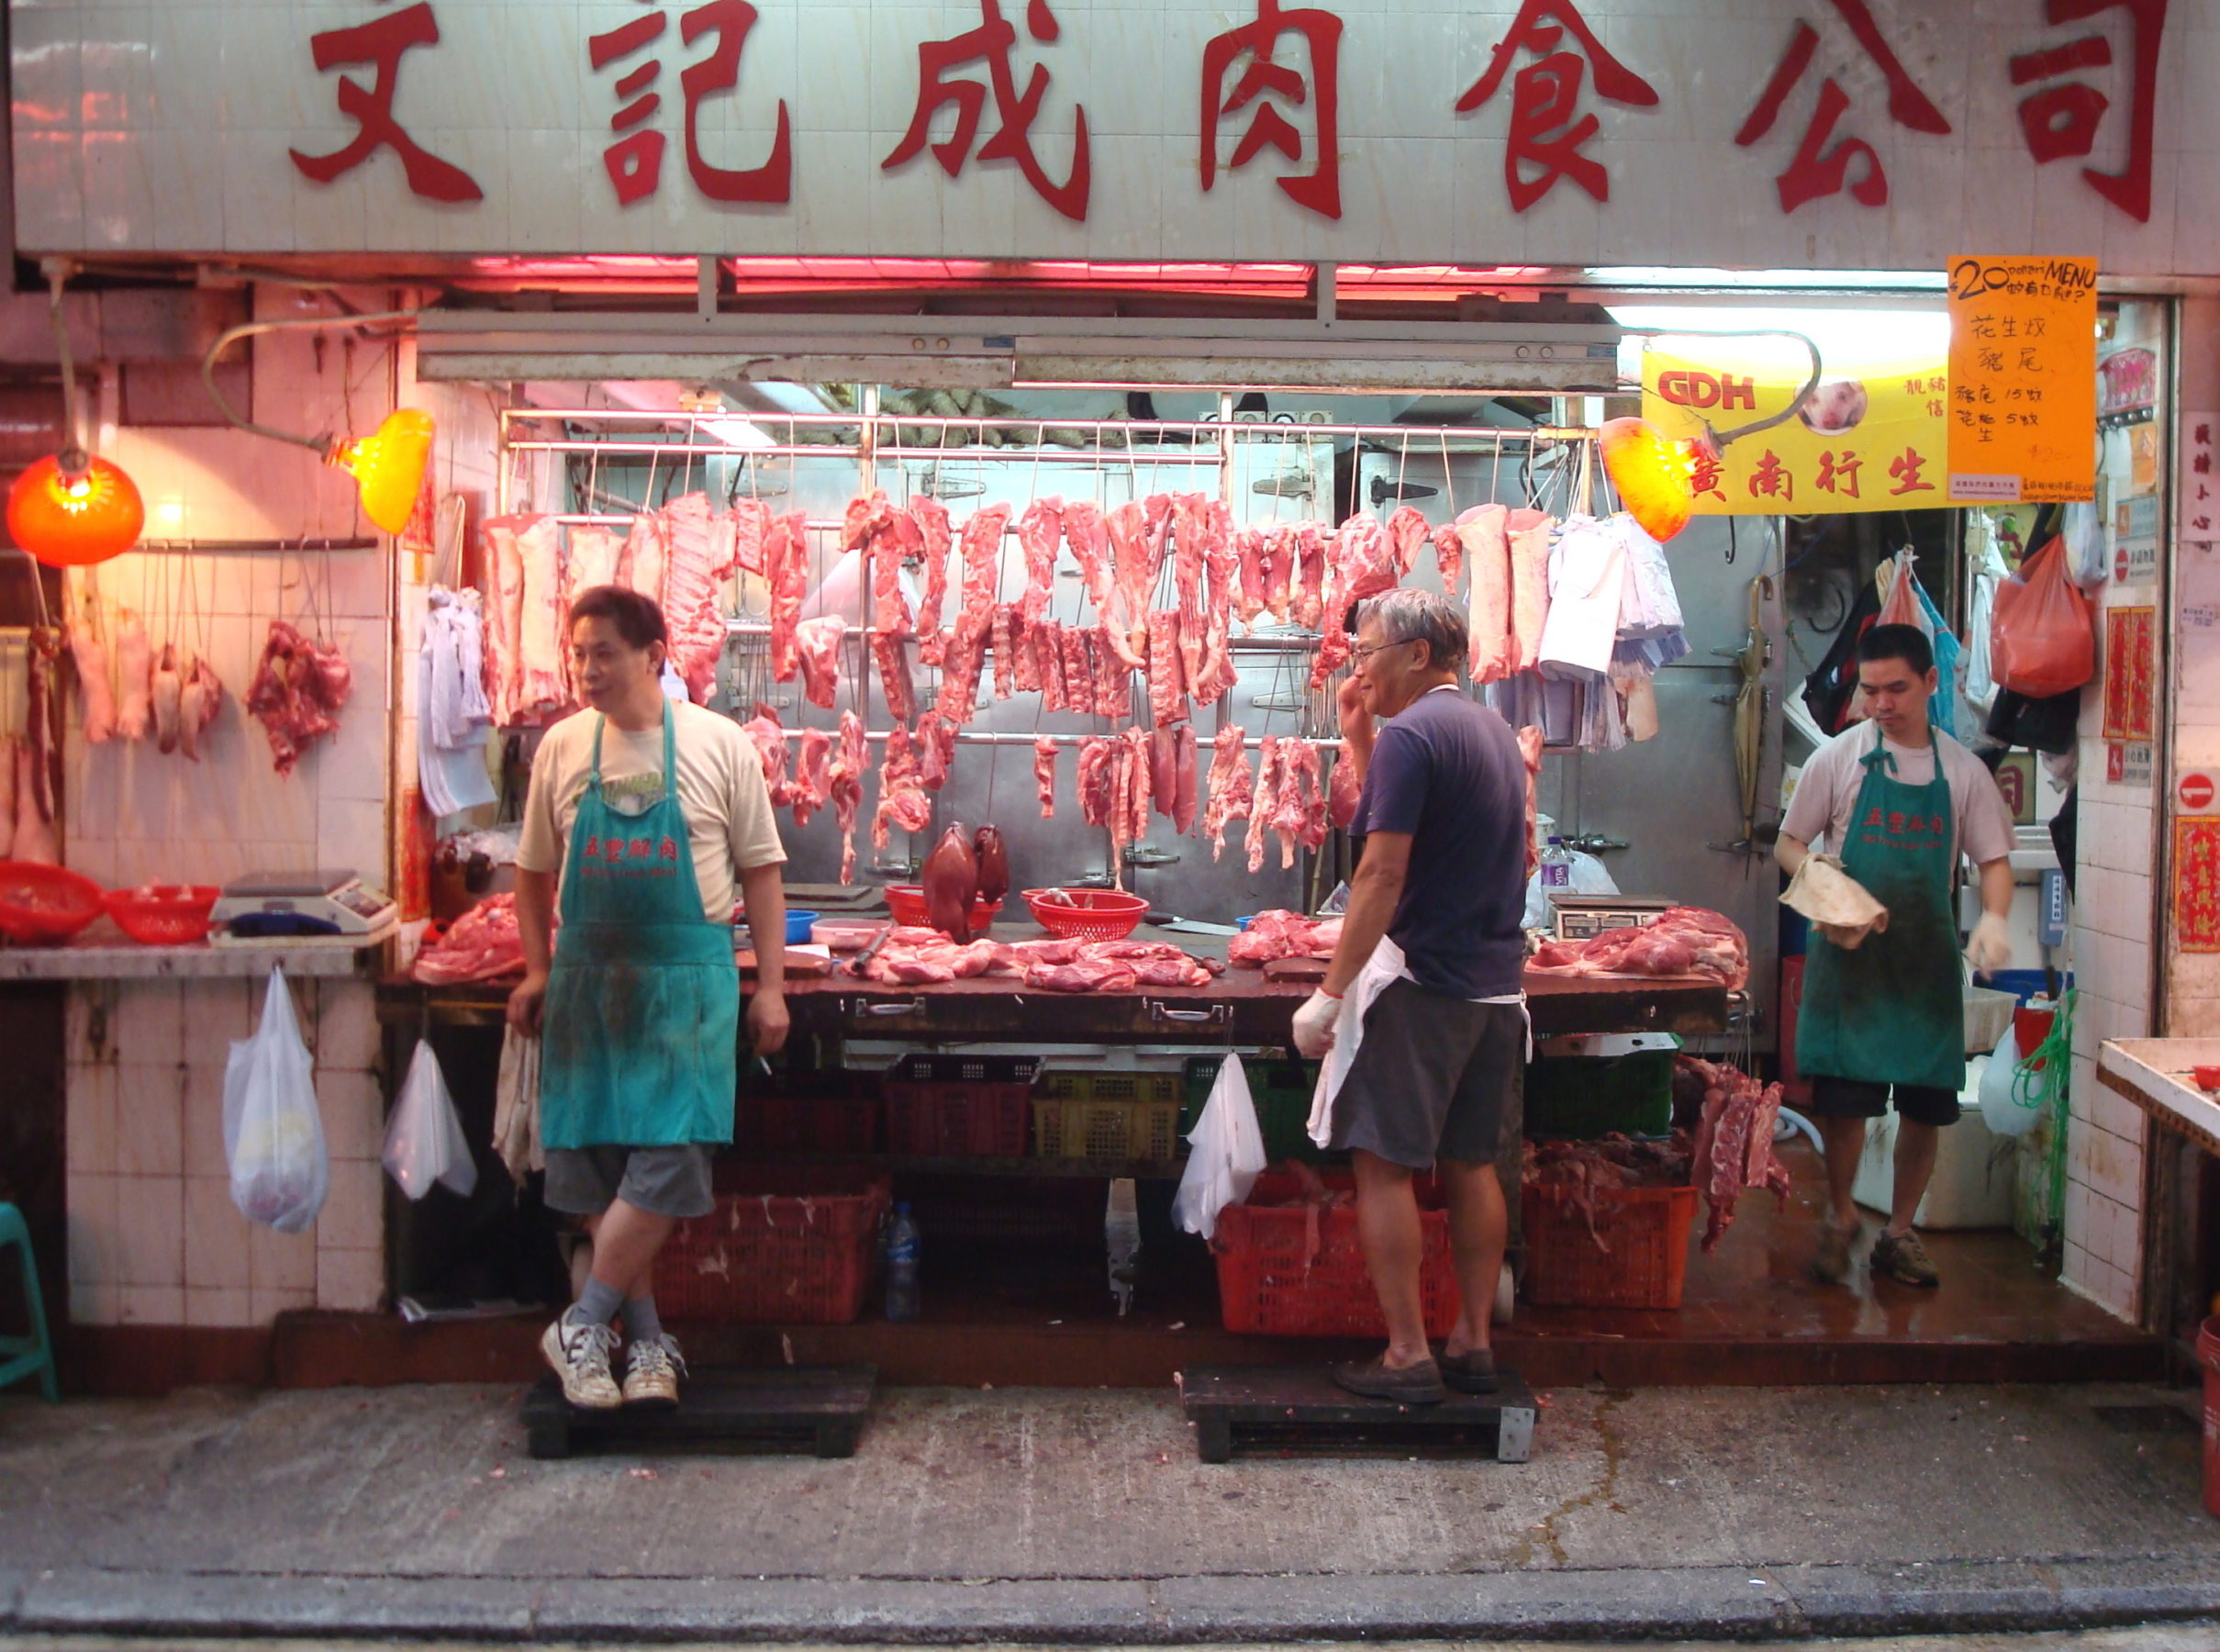 A butcher's stall with meat hanging from hooks and on the counter with two butchers standing at the stall and one exiting a door on the side